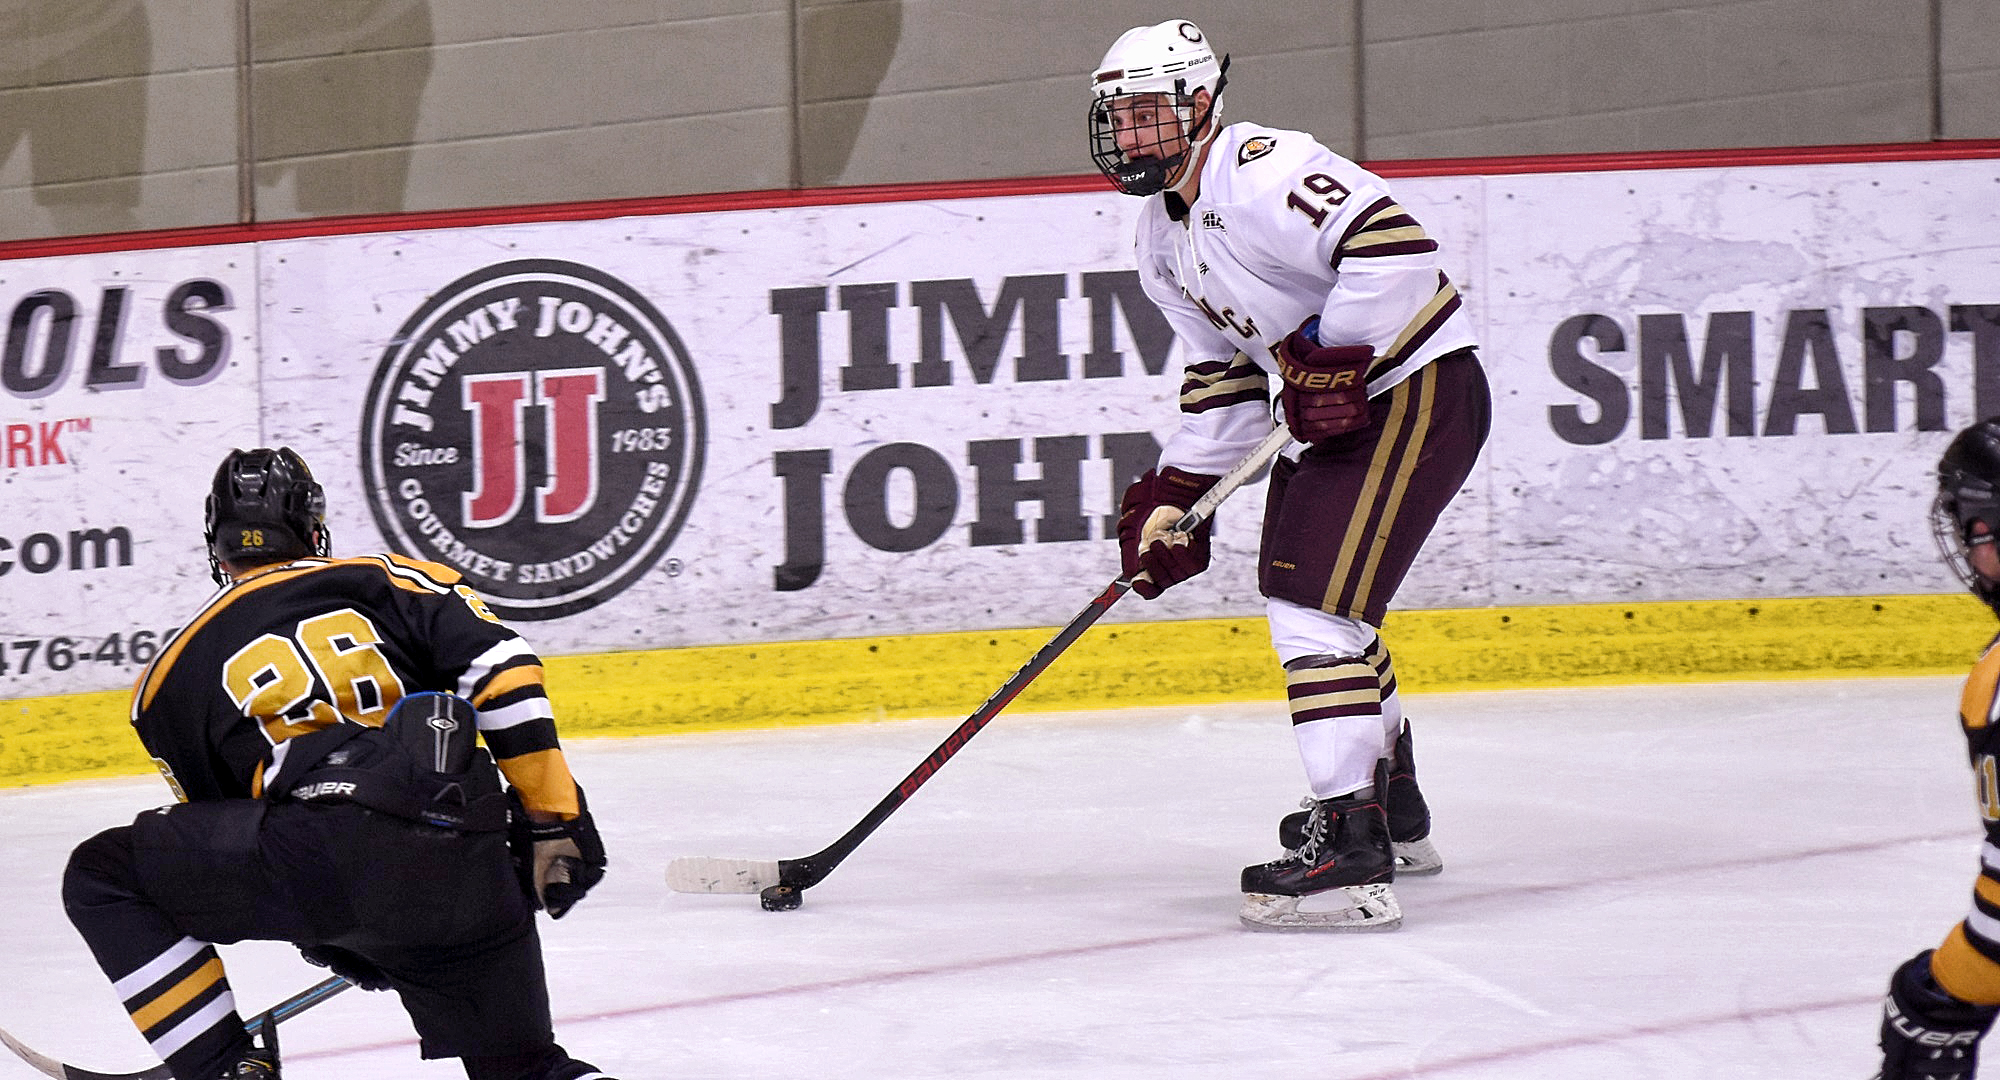 Sophomore Tyler Bossert looks to move the puck on the power play in the second period of the Cobbers' 5-1 win over St. Olaf.